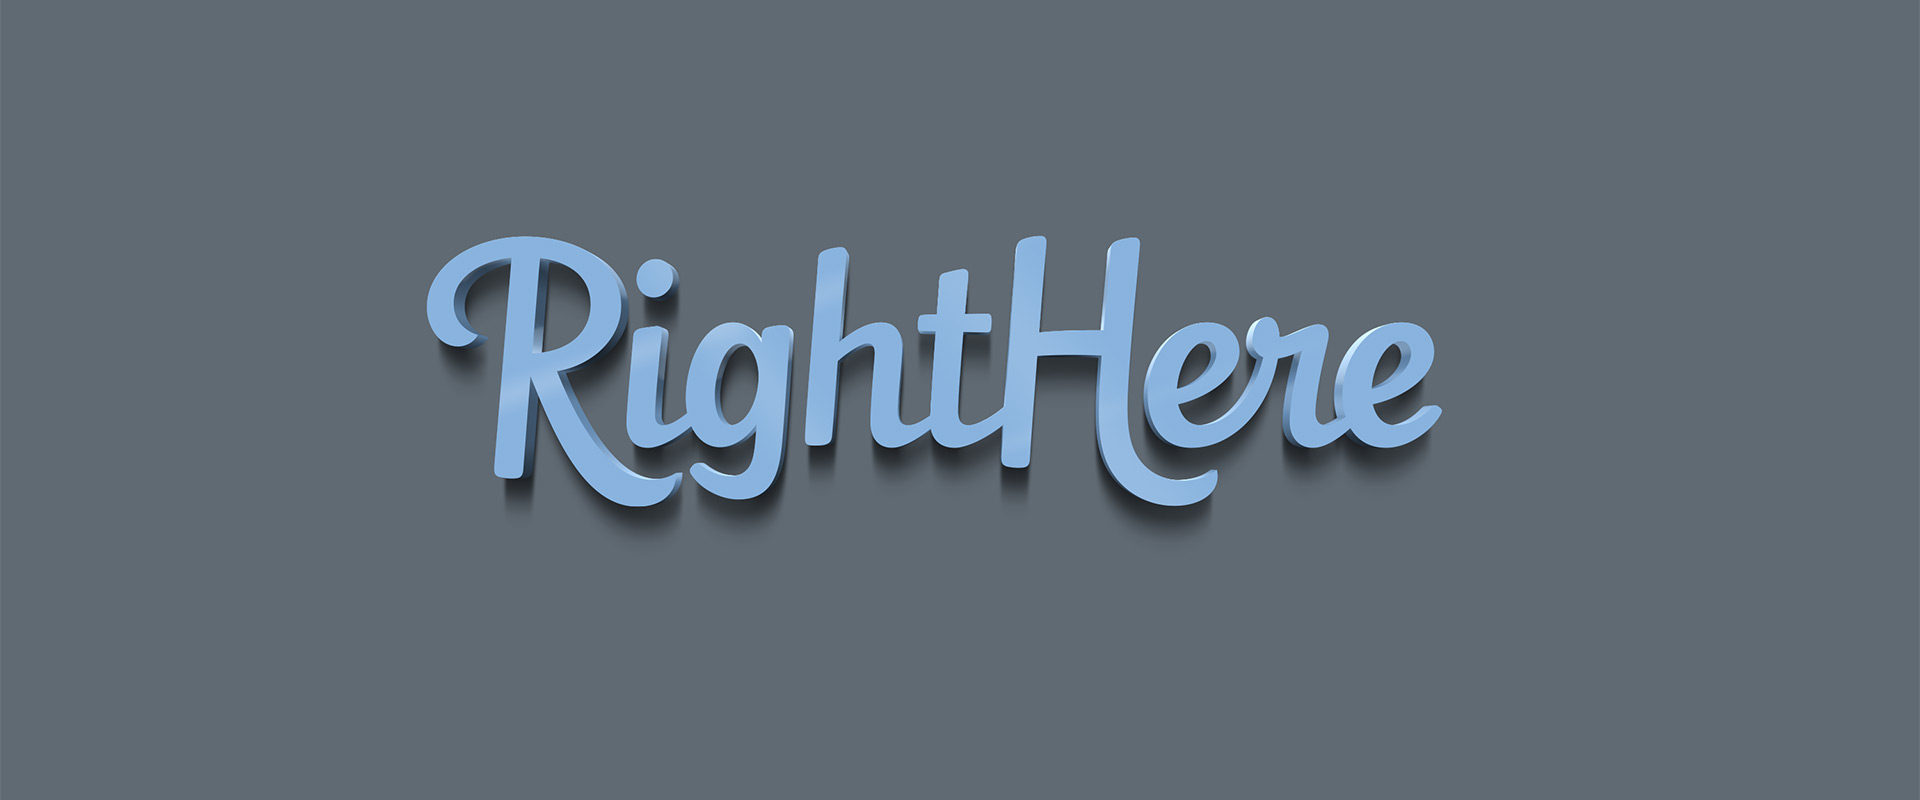 3D Blue RightHere logo on grey background